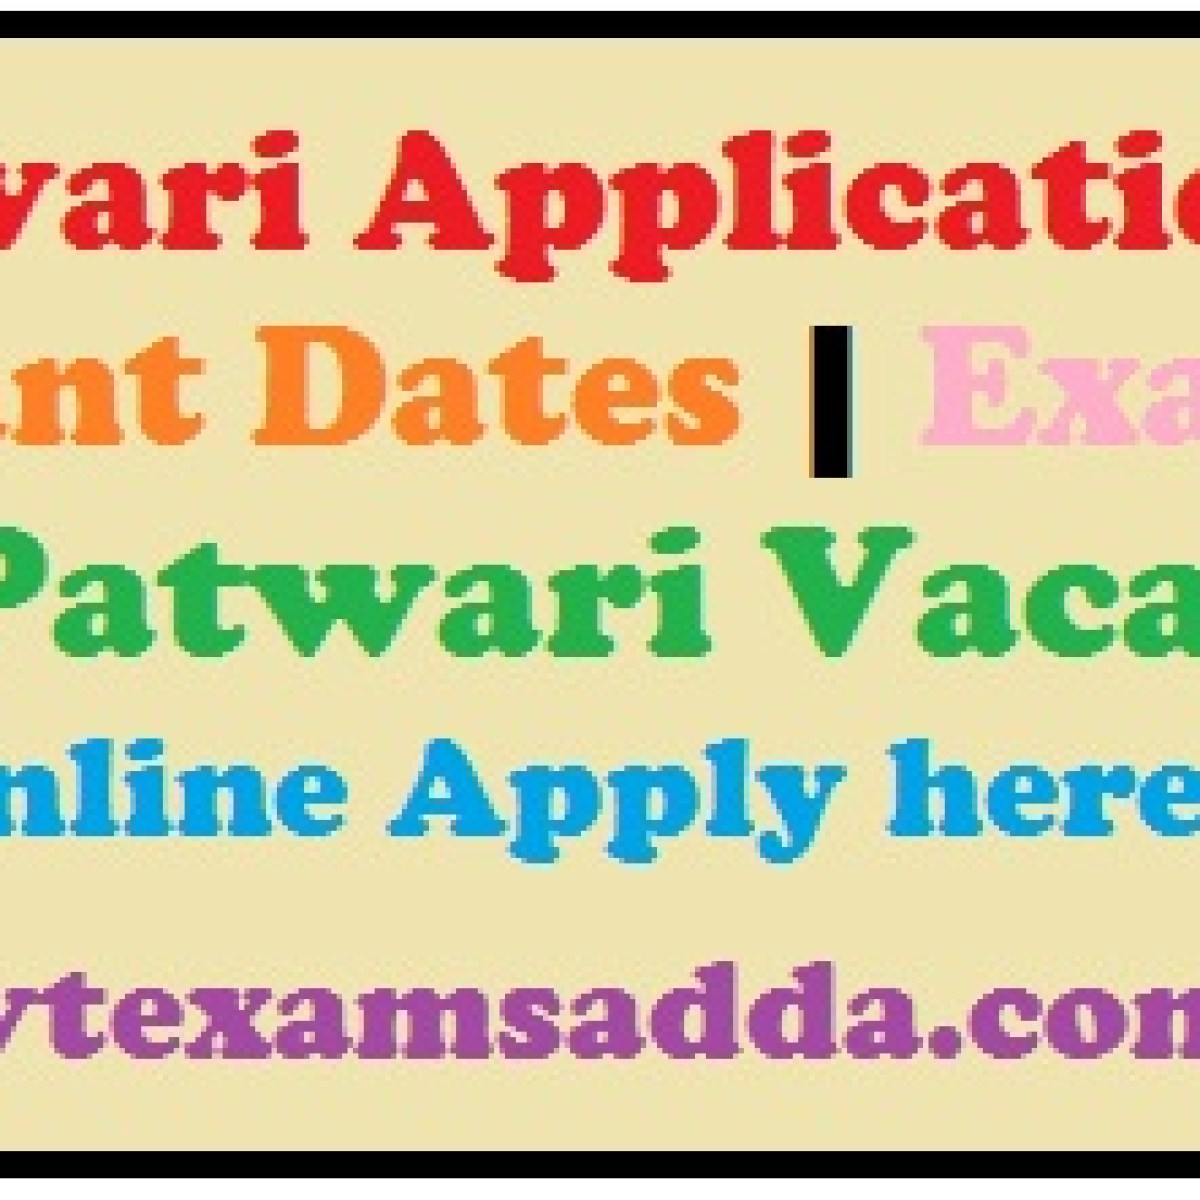 HP Patwari Application Form 2019 Online Apply @himachal.nic.in on office filing jobs, quick jobs, packing jobs, pastry jobs,